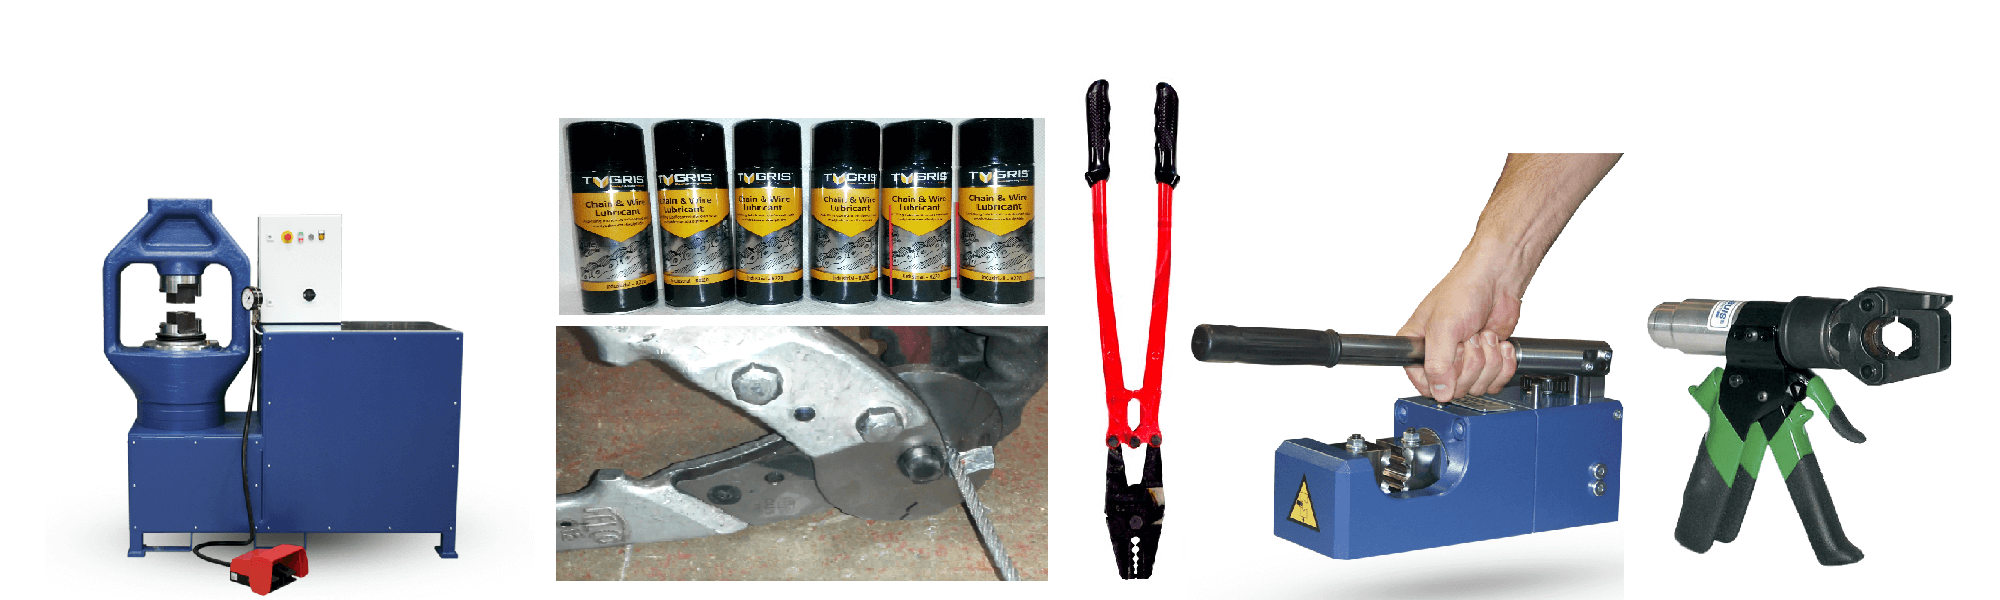 Wire Rope Tools | Cutters Crimpers Lubricant | Rope Services